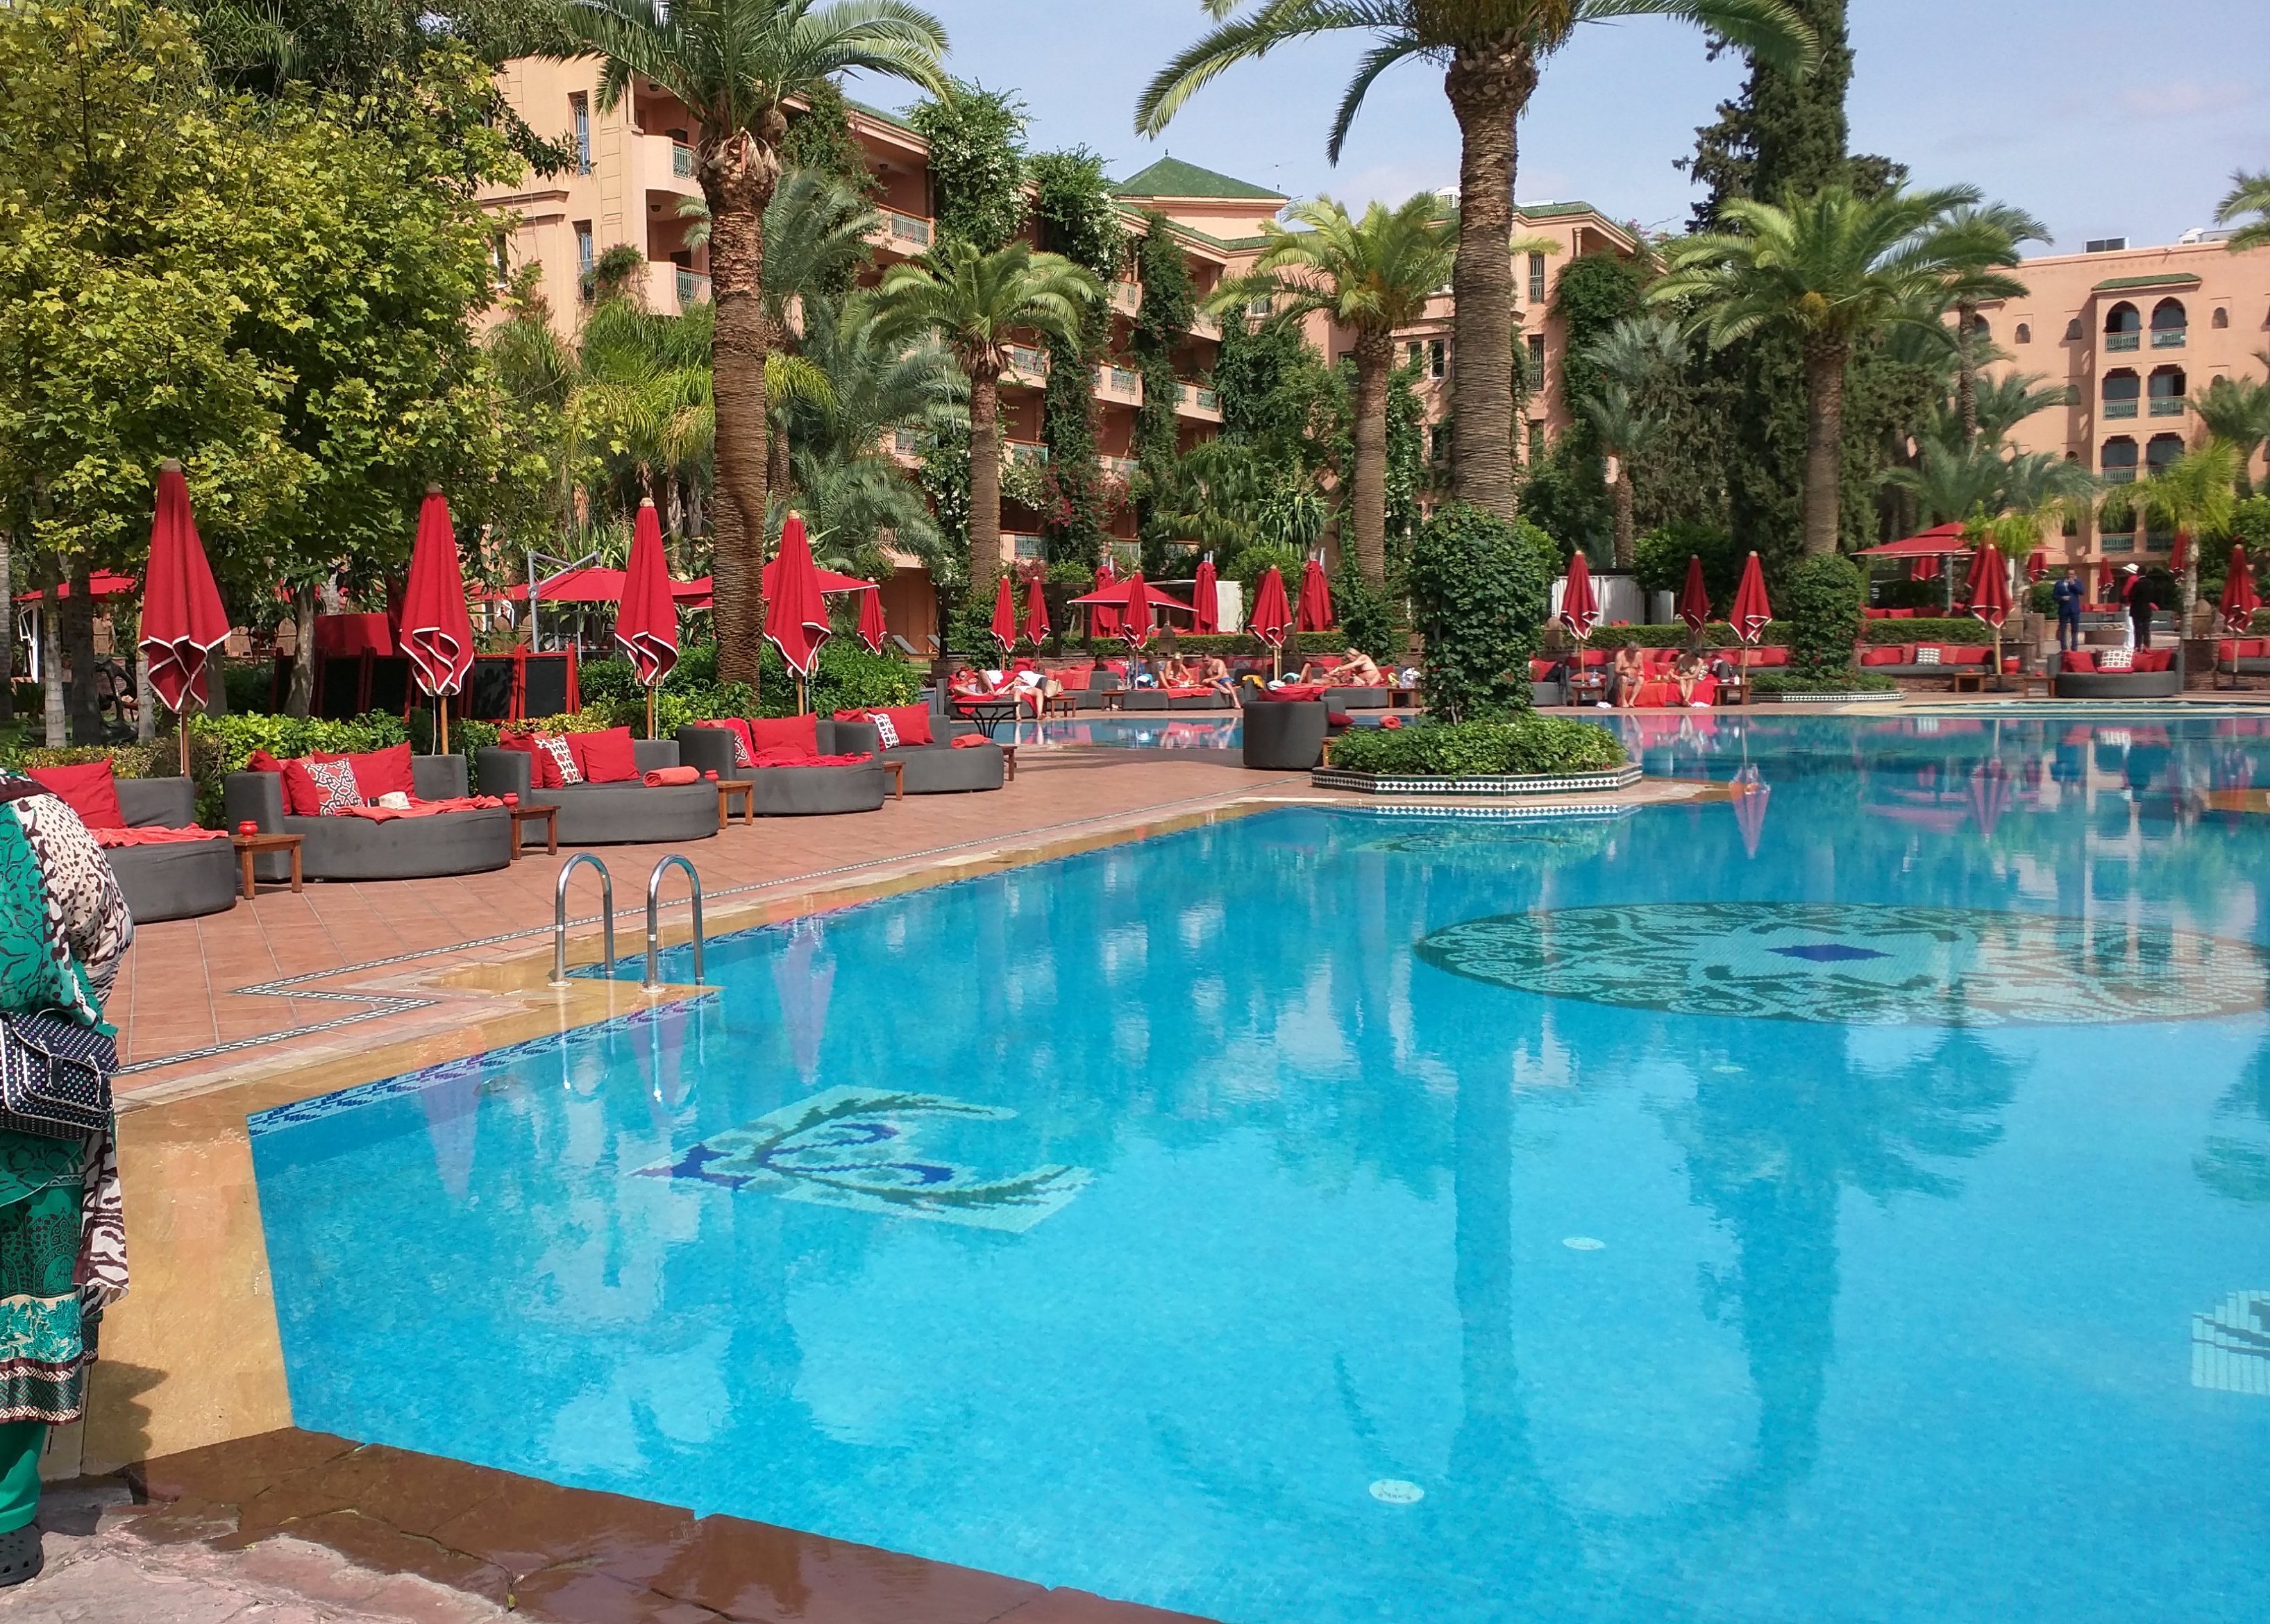 Sofitel Imperial Palace, Marrakech